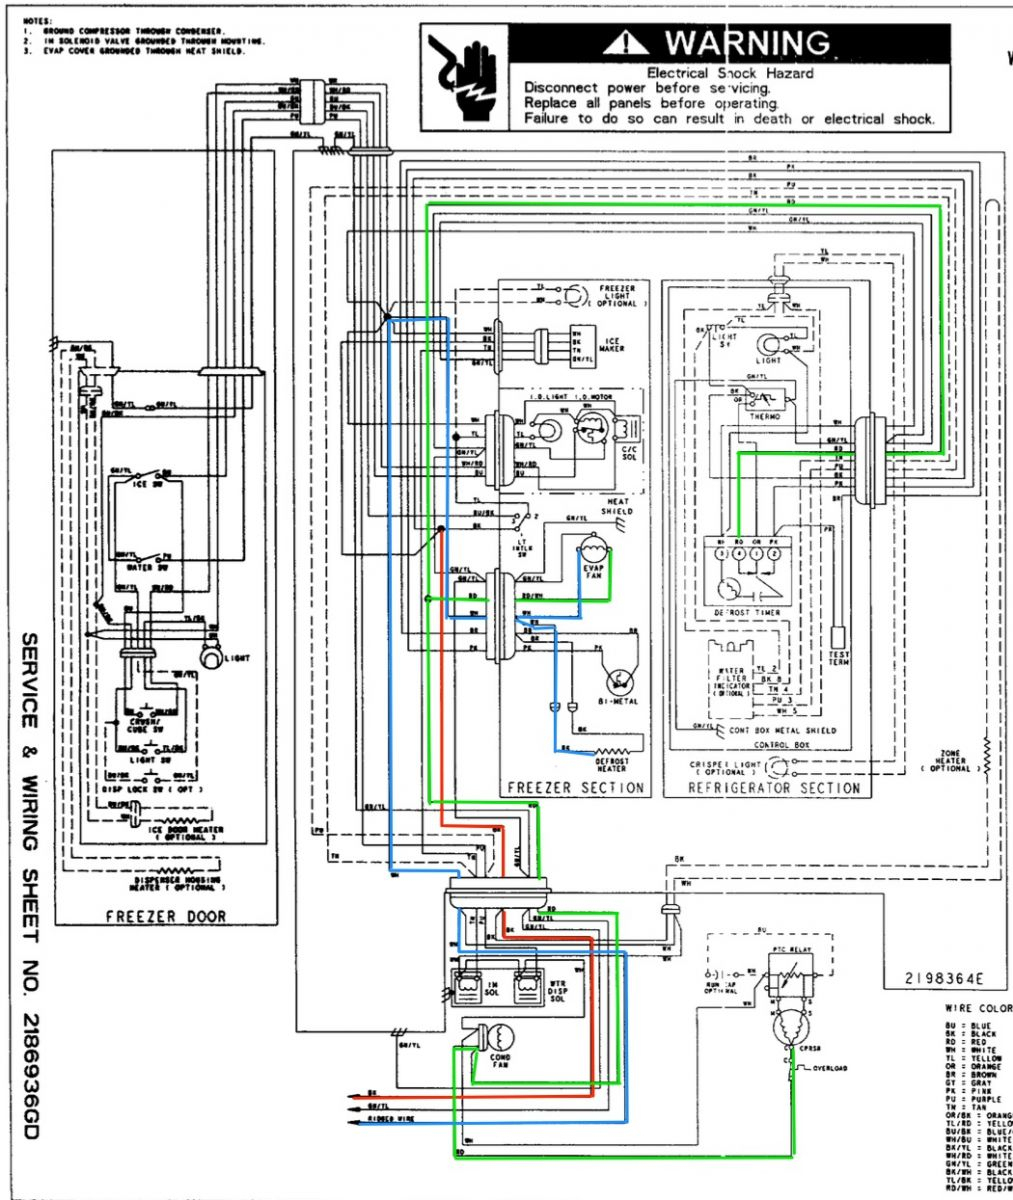 Amana Ice Maker Wiring Diagram | Schematic Diagram - Ge Refrigerator Wiring Diagram